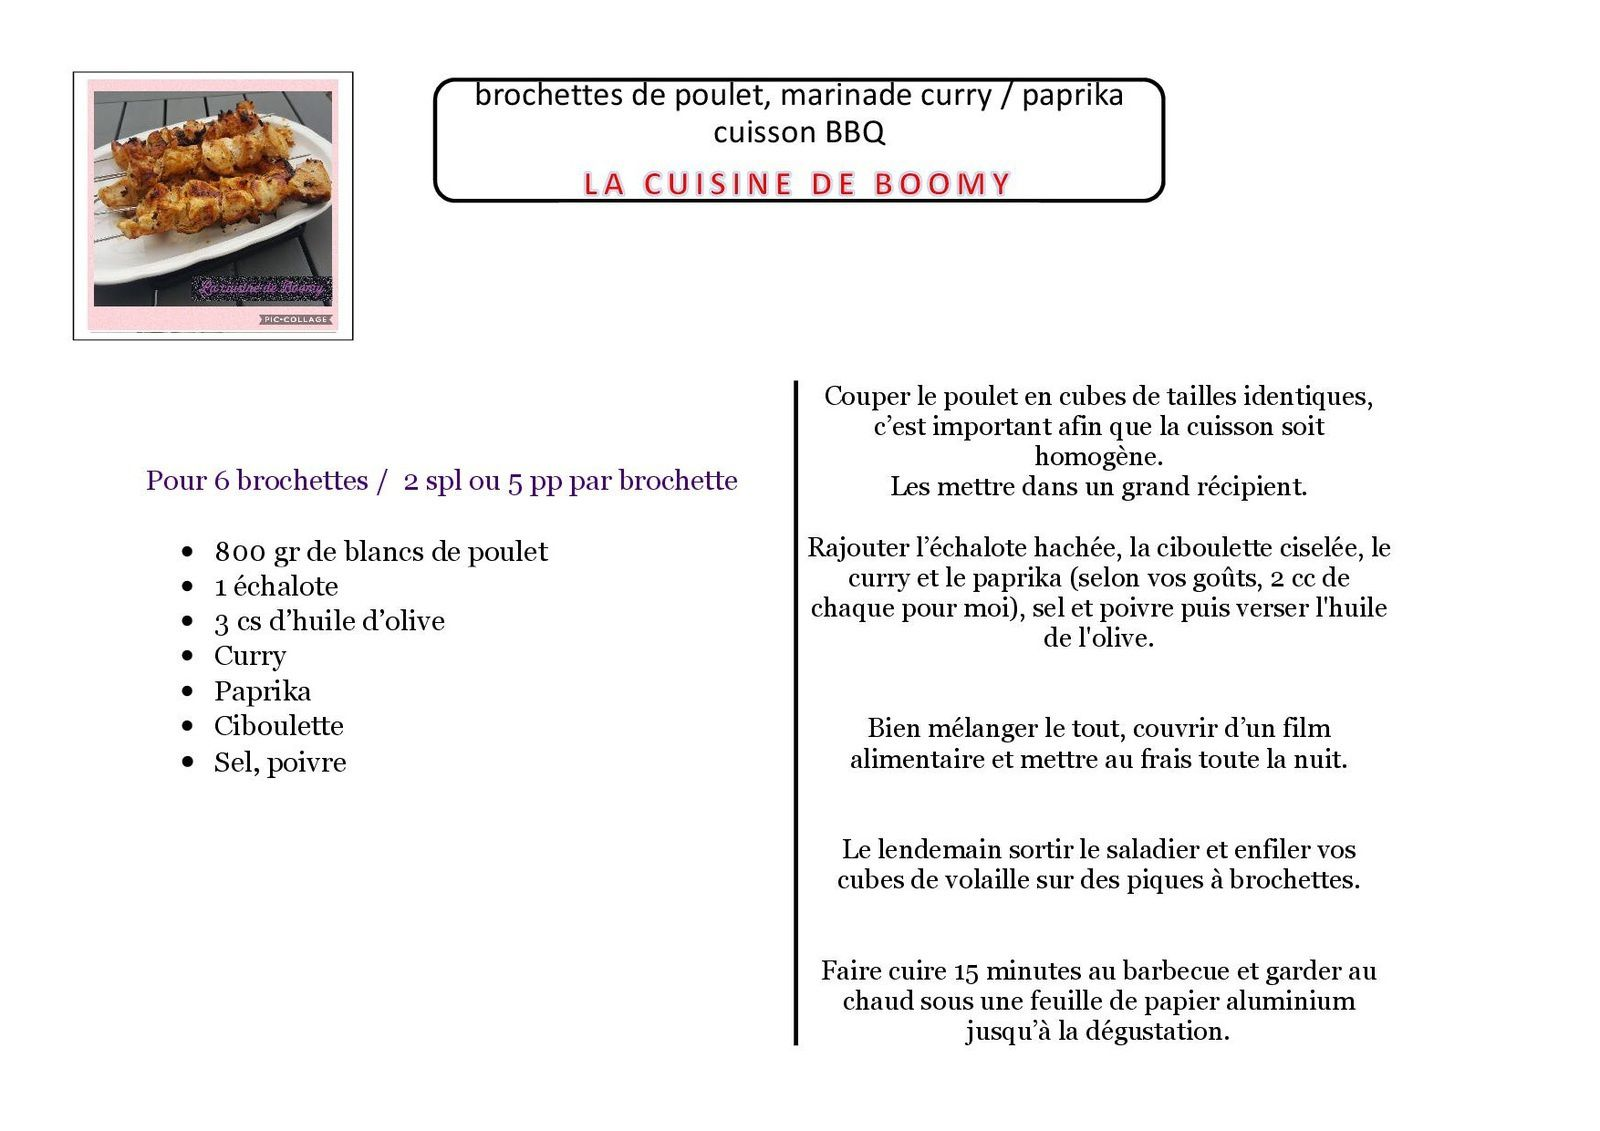 Brochettes de poulet, marinade curry / paprika cuisson BBQ